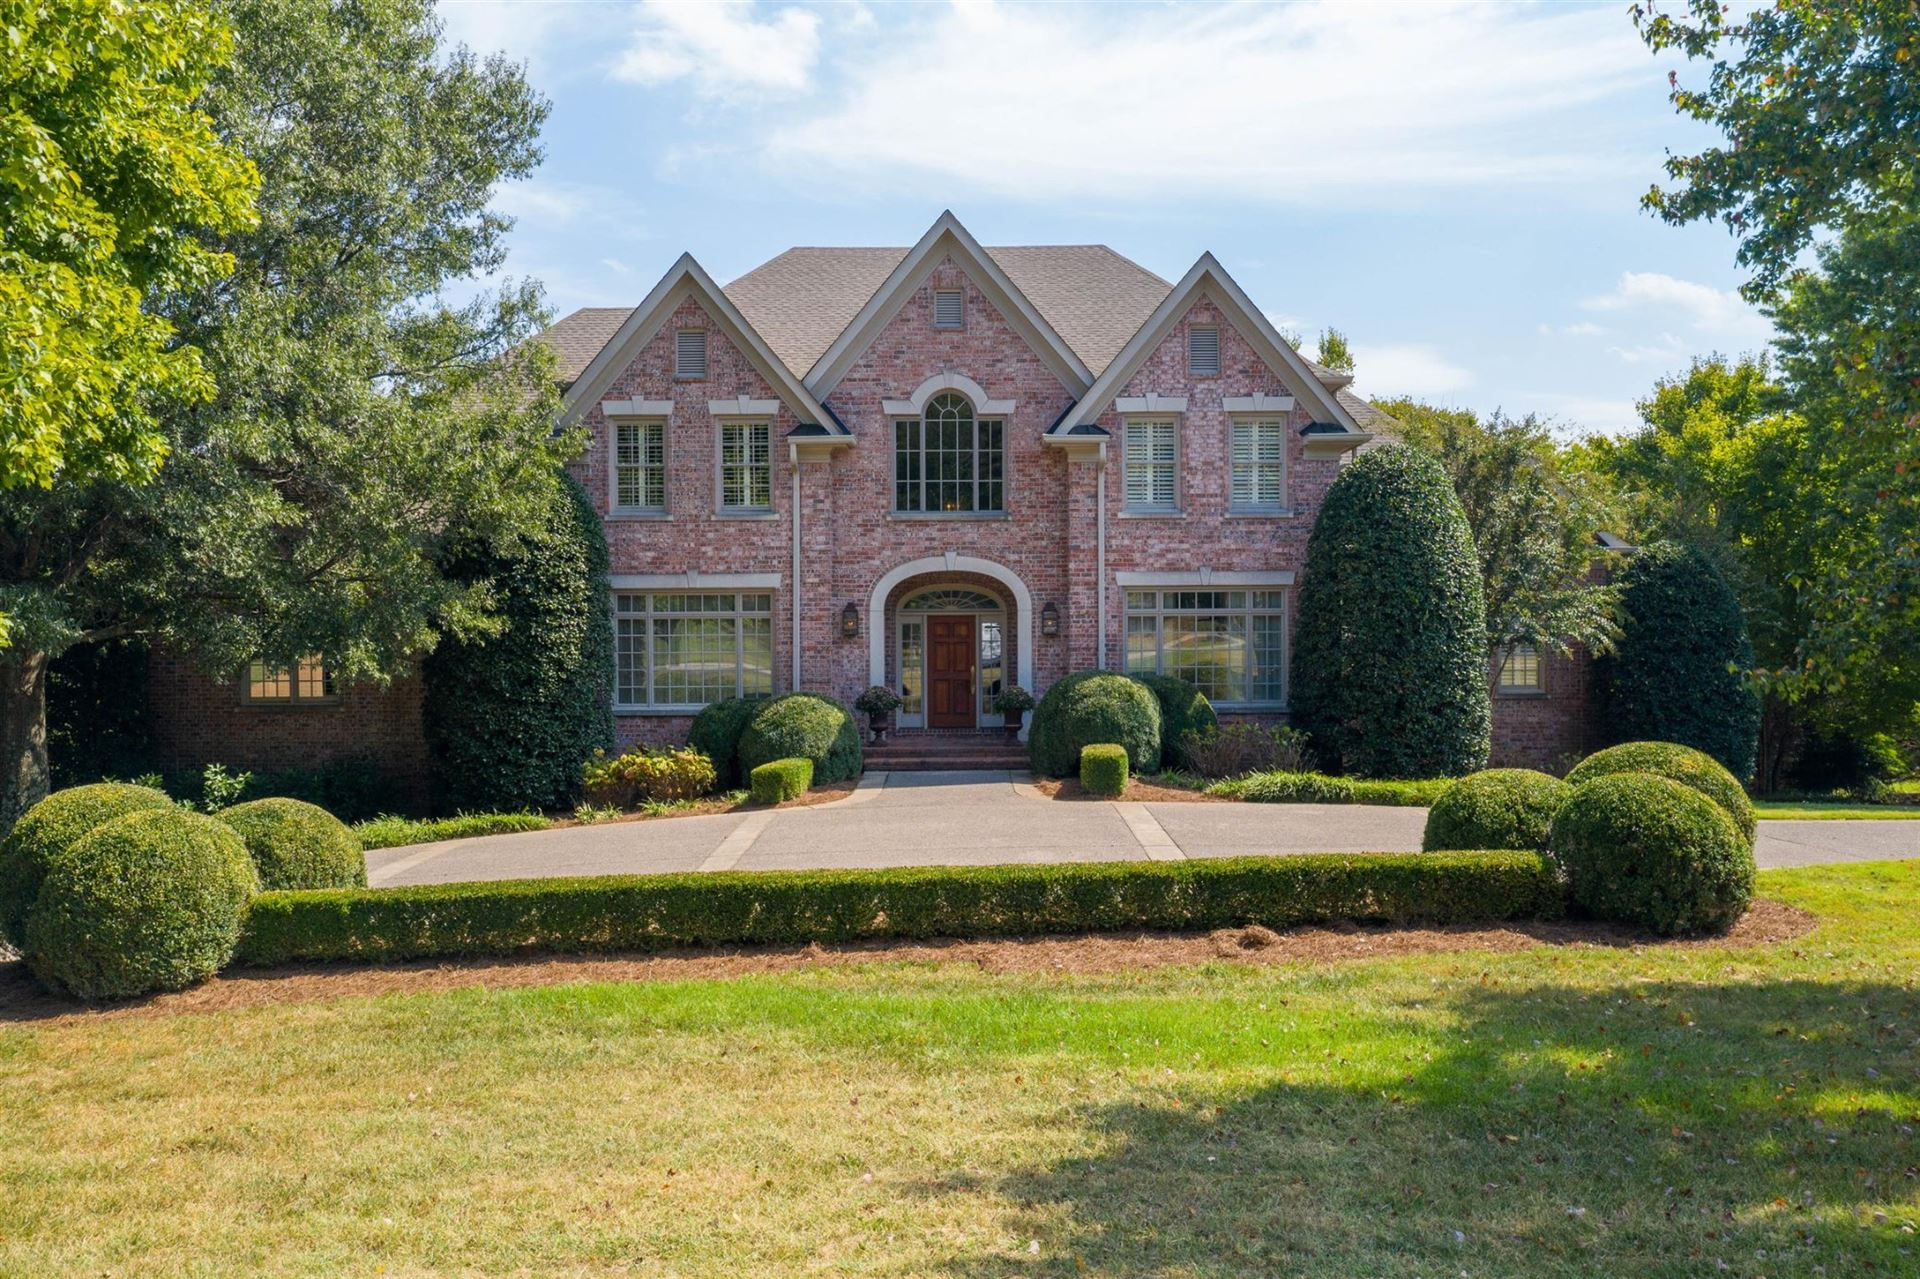 Photo of 812 Princeton Hills Dr, Brentwood, TN 37027 (MLS # 2126154)